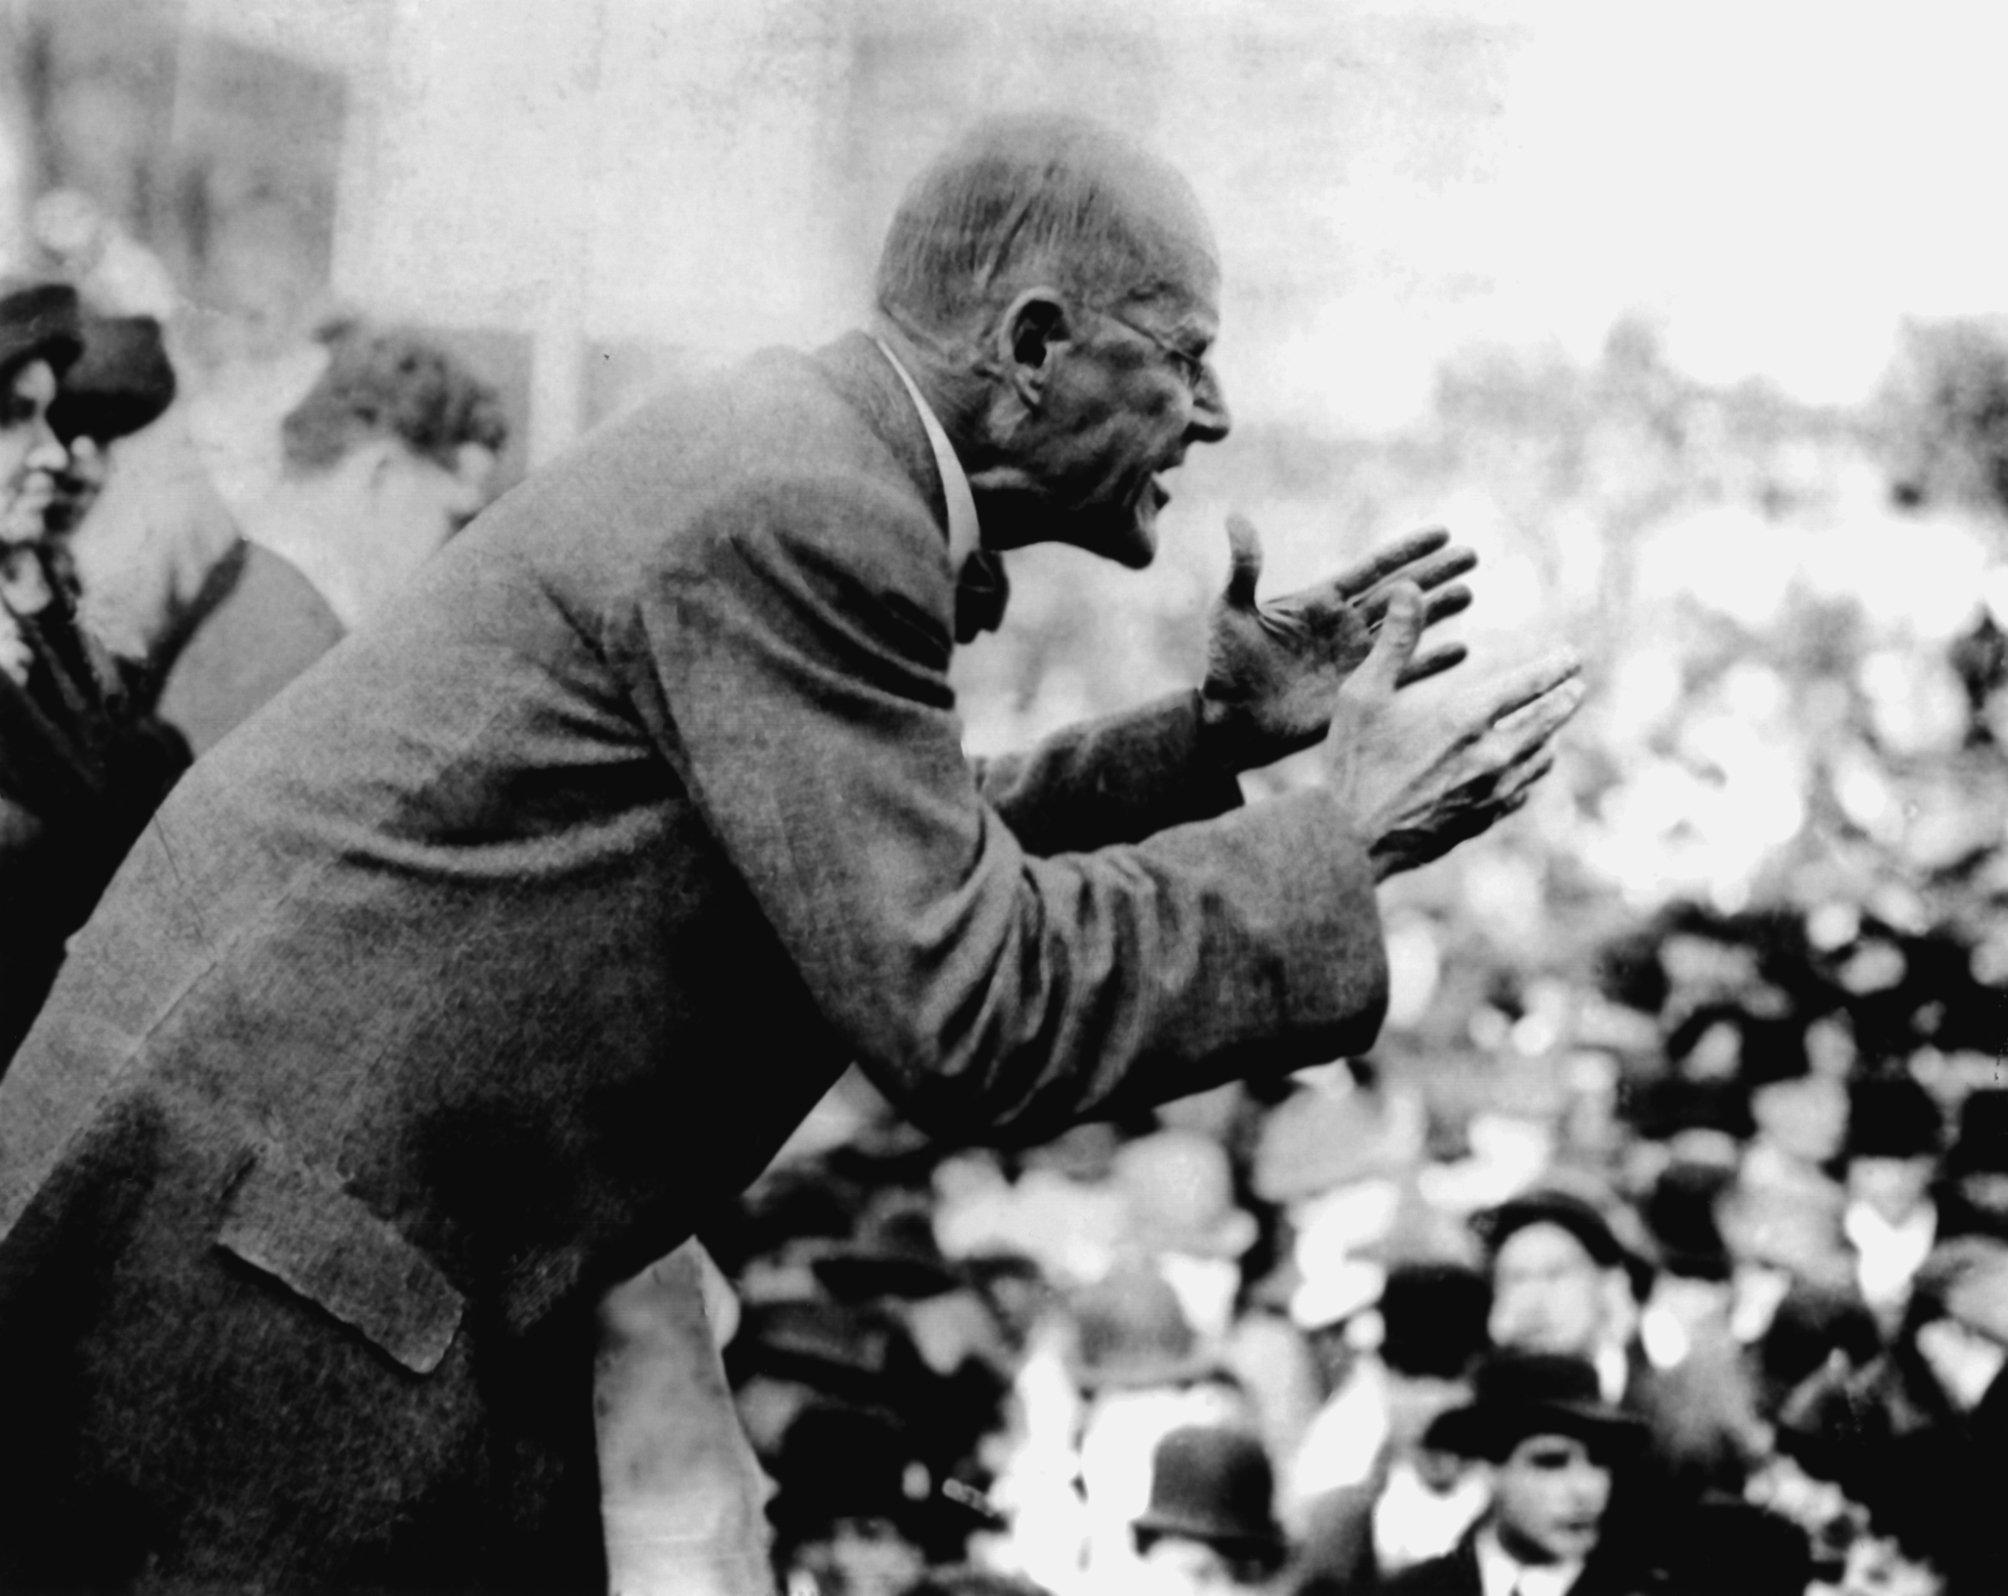 Eugene V. Debs delivering his anti-war speech in Canton, Ohio on June 16, 1918. He would later be jailed for the speech. (Wikimedia Commons)